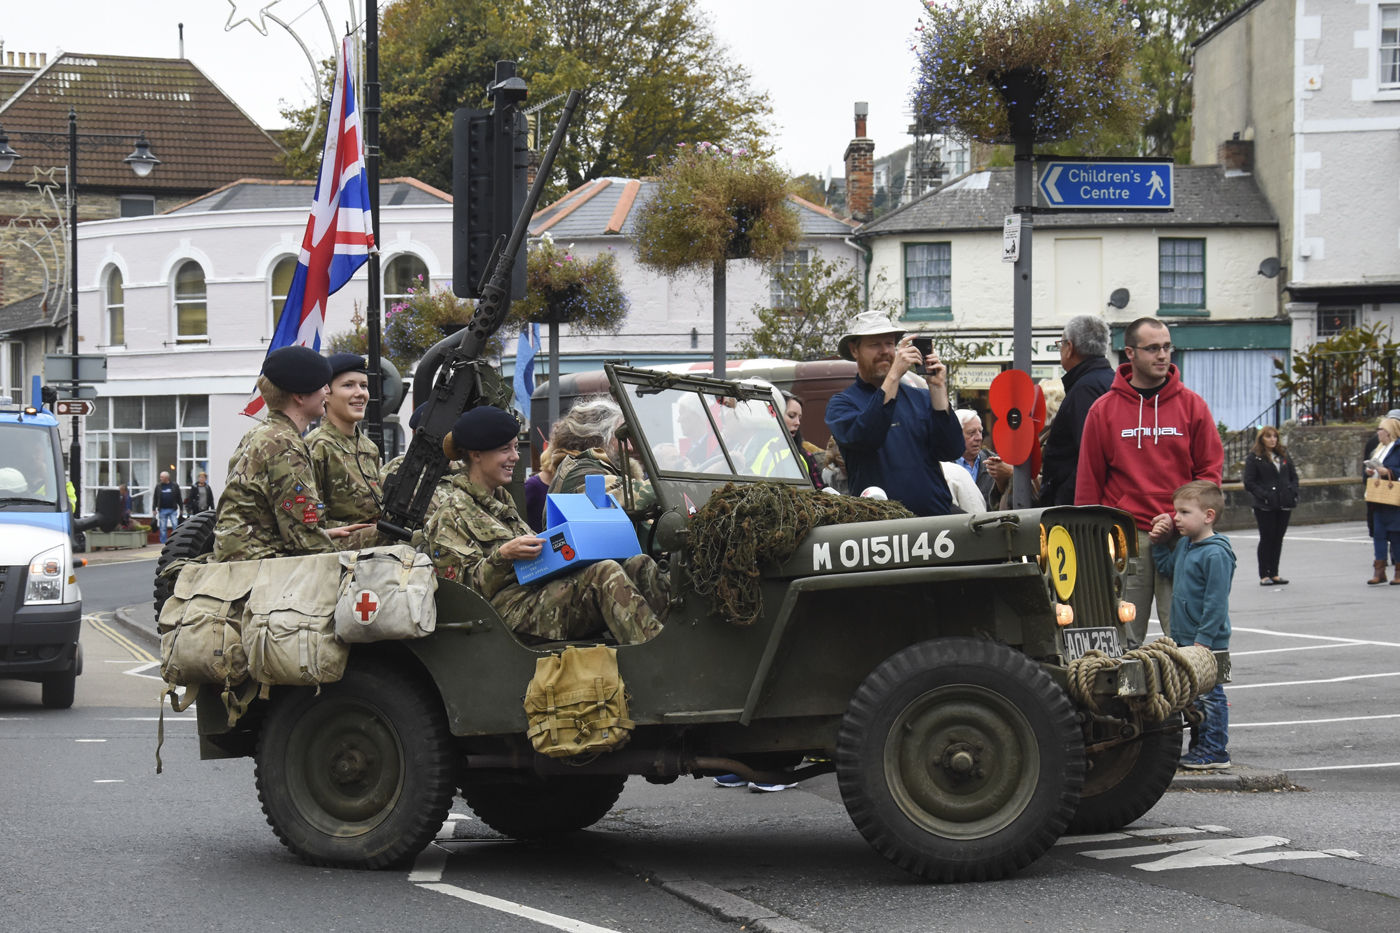 20161029_stp_3537-hss-launch-of-the-poppy-appeal-2016-in-ventnor